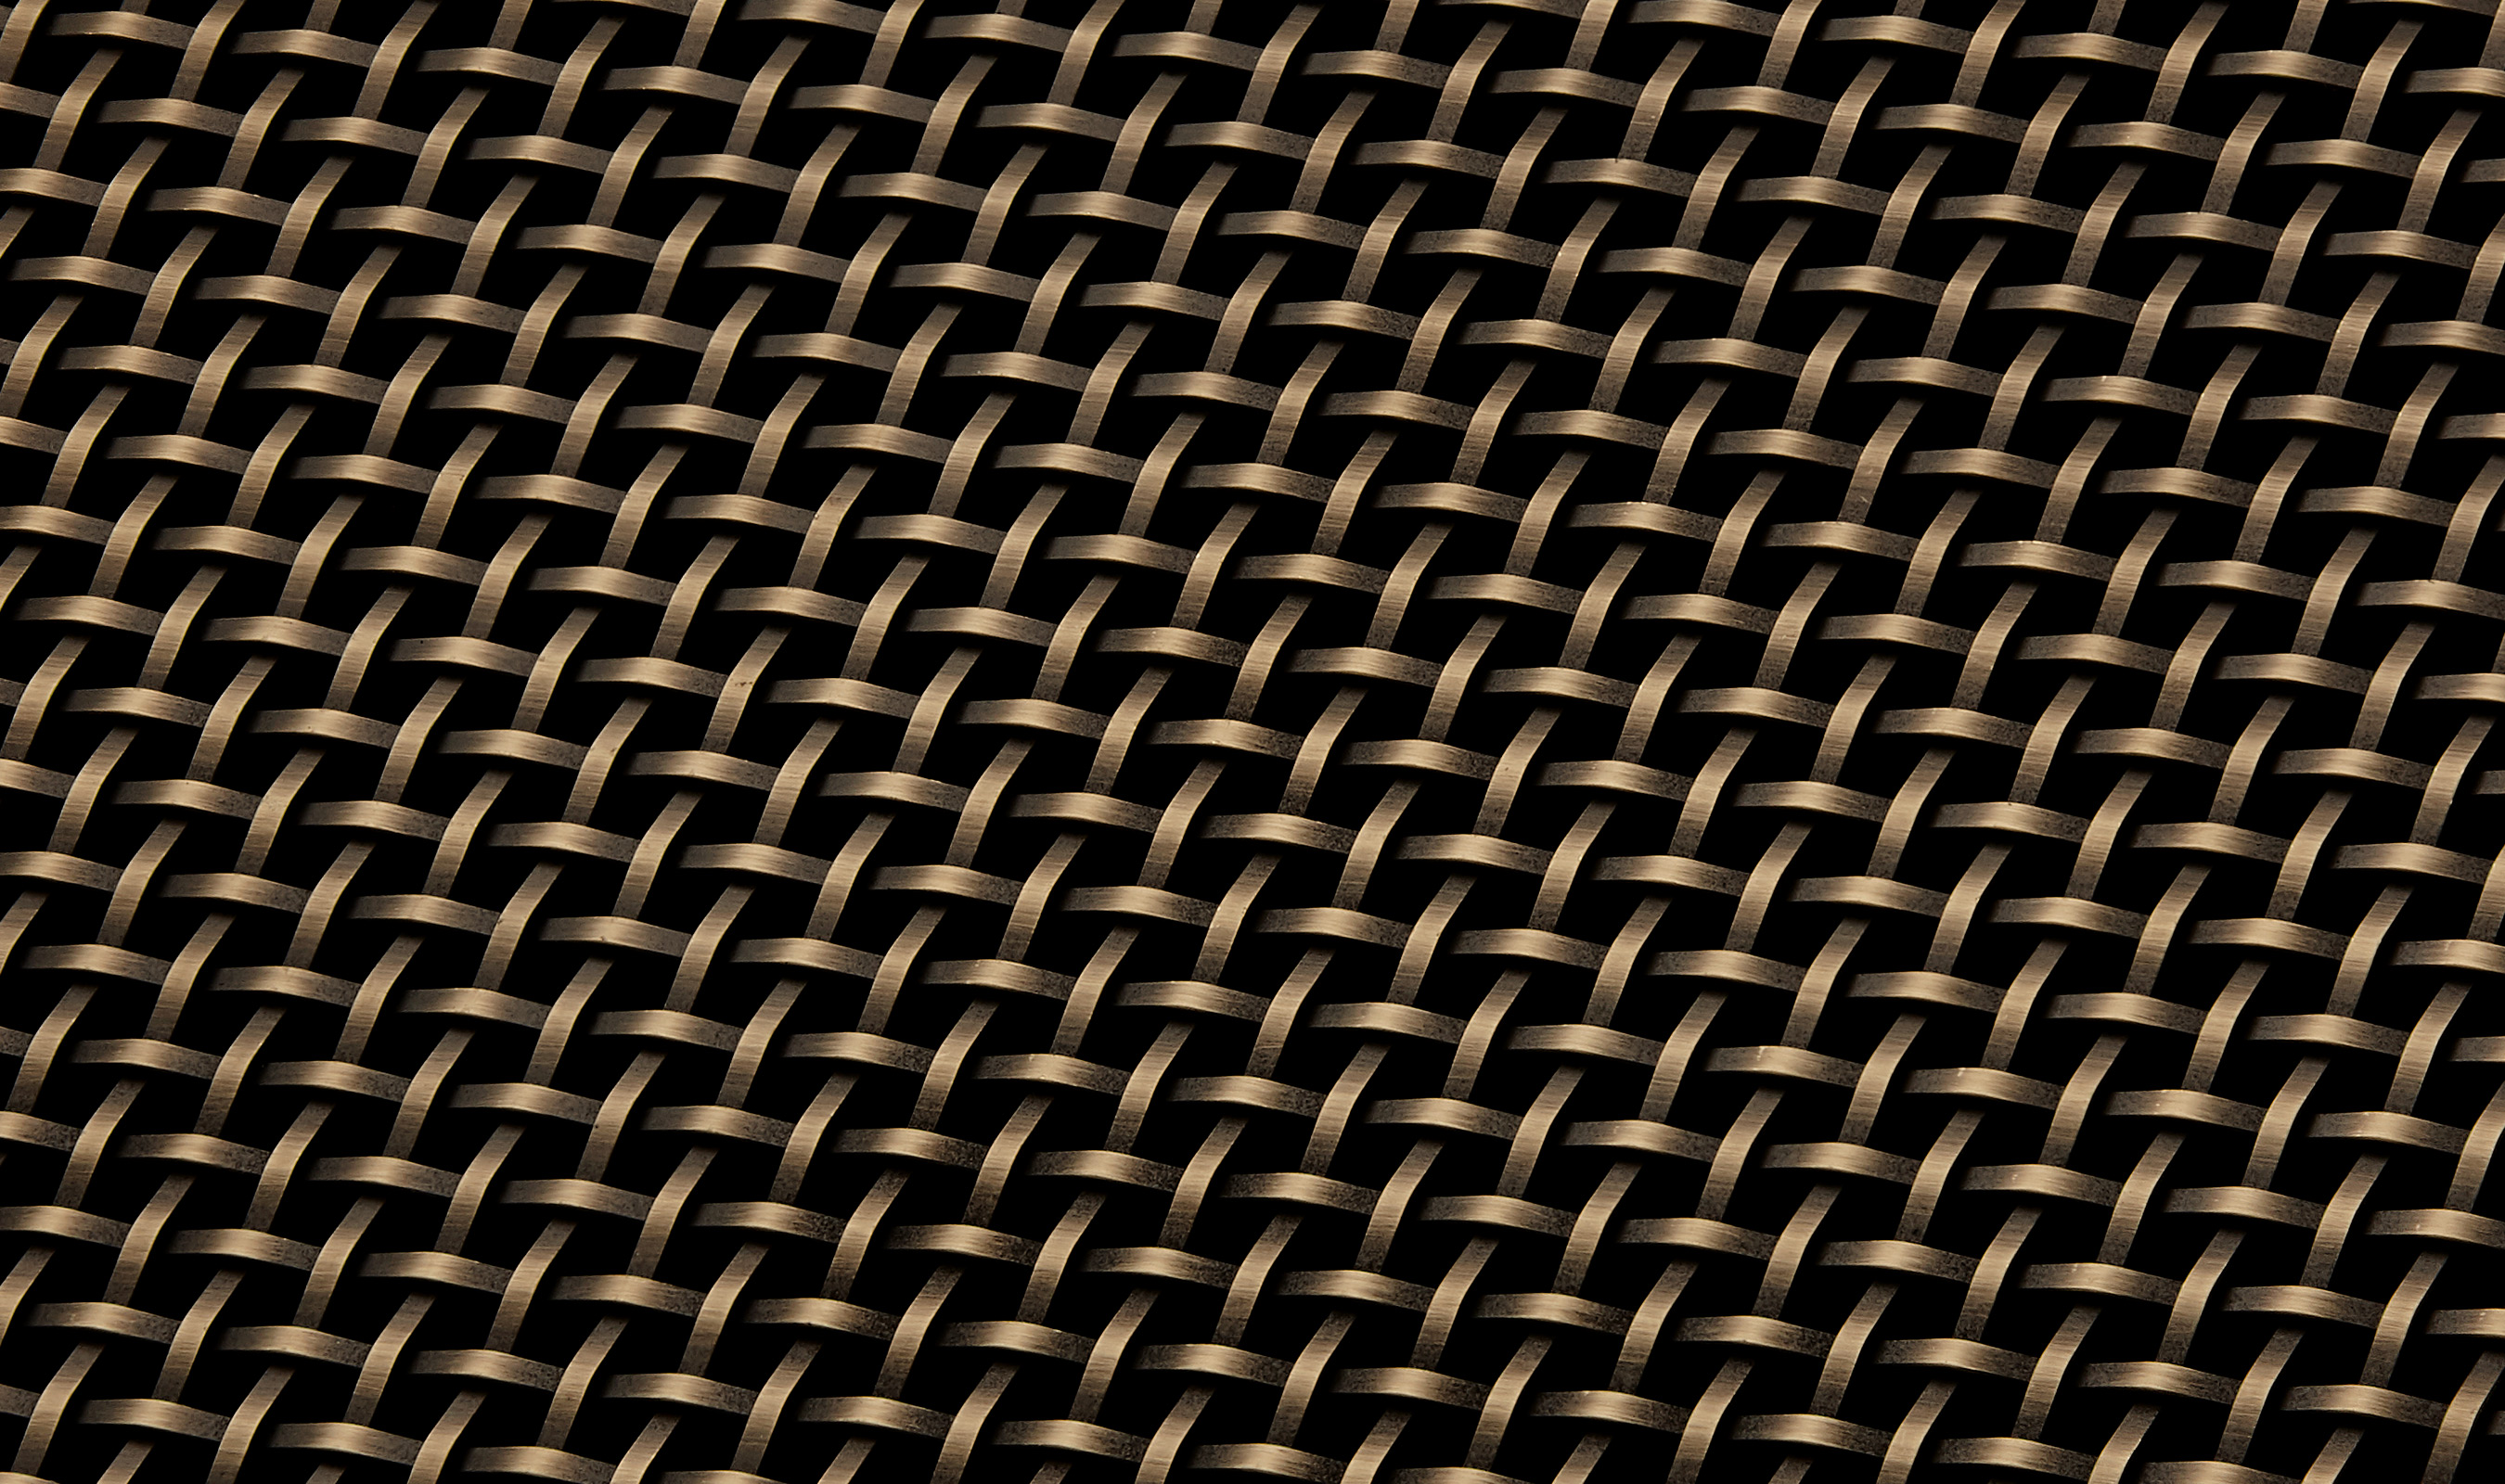 S-50 Antique Brass Plated Finish wire mesh